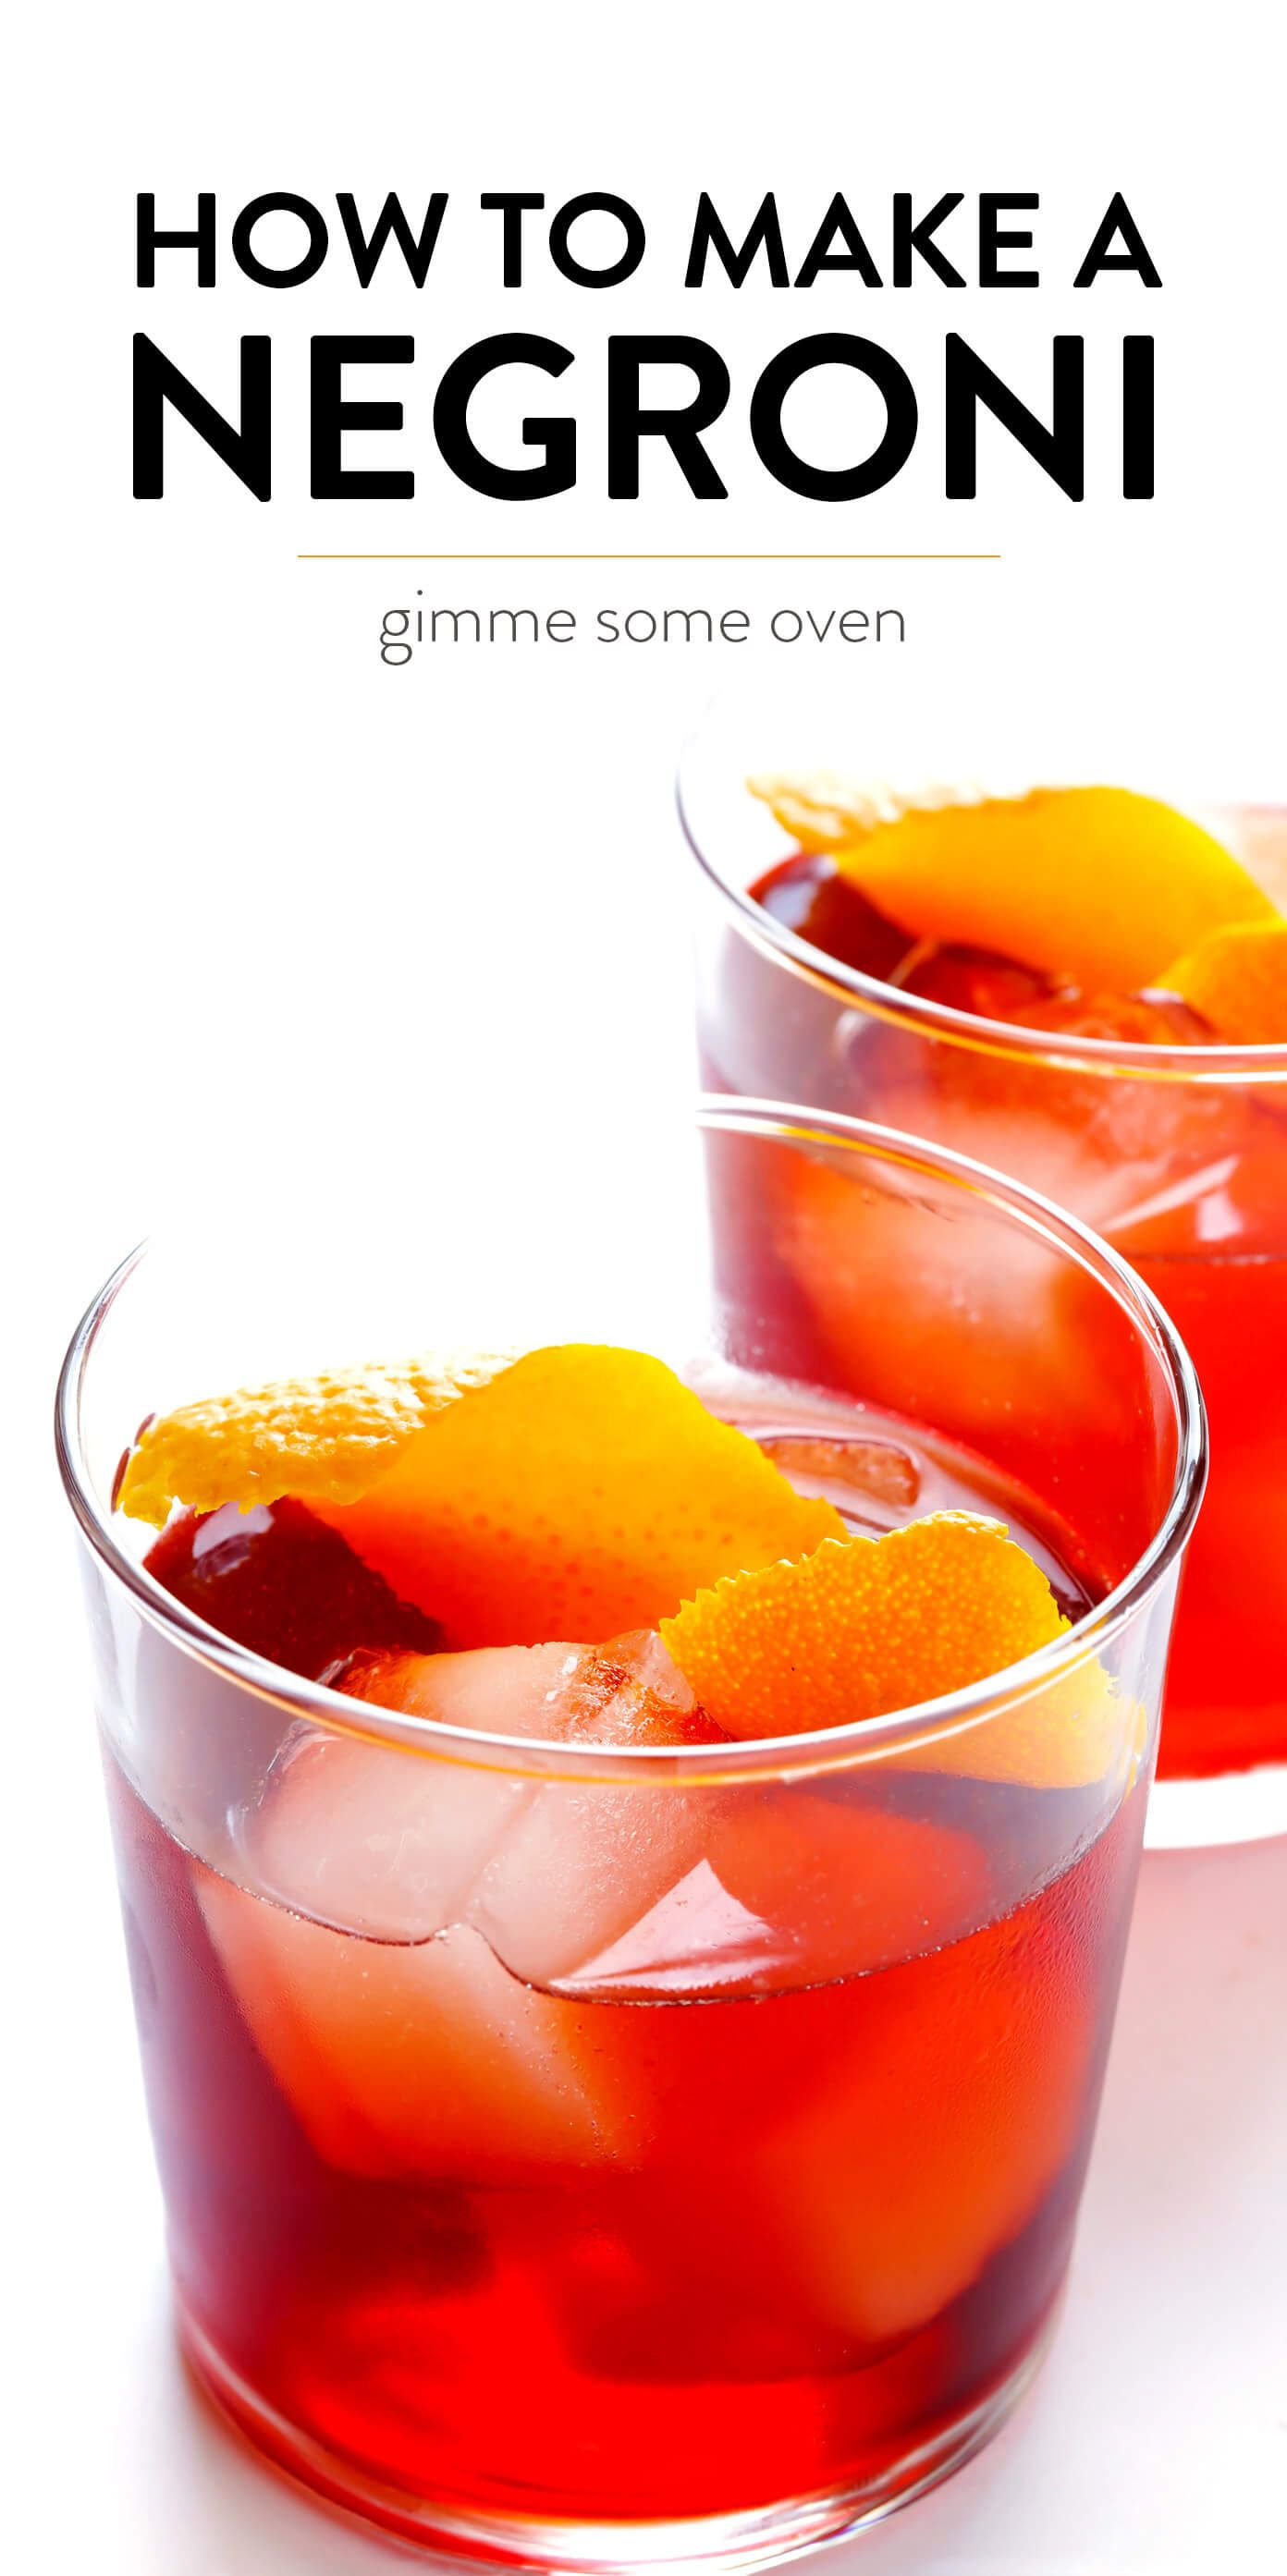 Ricetta Negroni Aperol.This Classic Negroni Cocktail Recipe Is Easy To Make With Three Simple Ingredients Campari G Negroni Recipe Classic Cocktail Recipes Classic Negroni Recipe